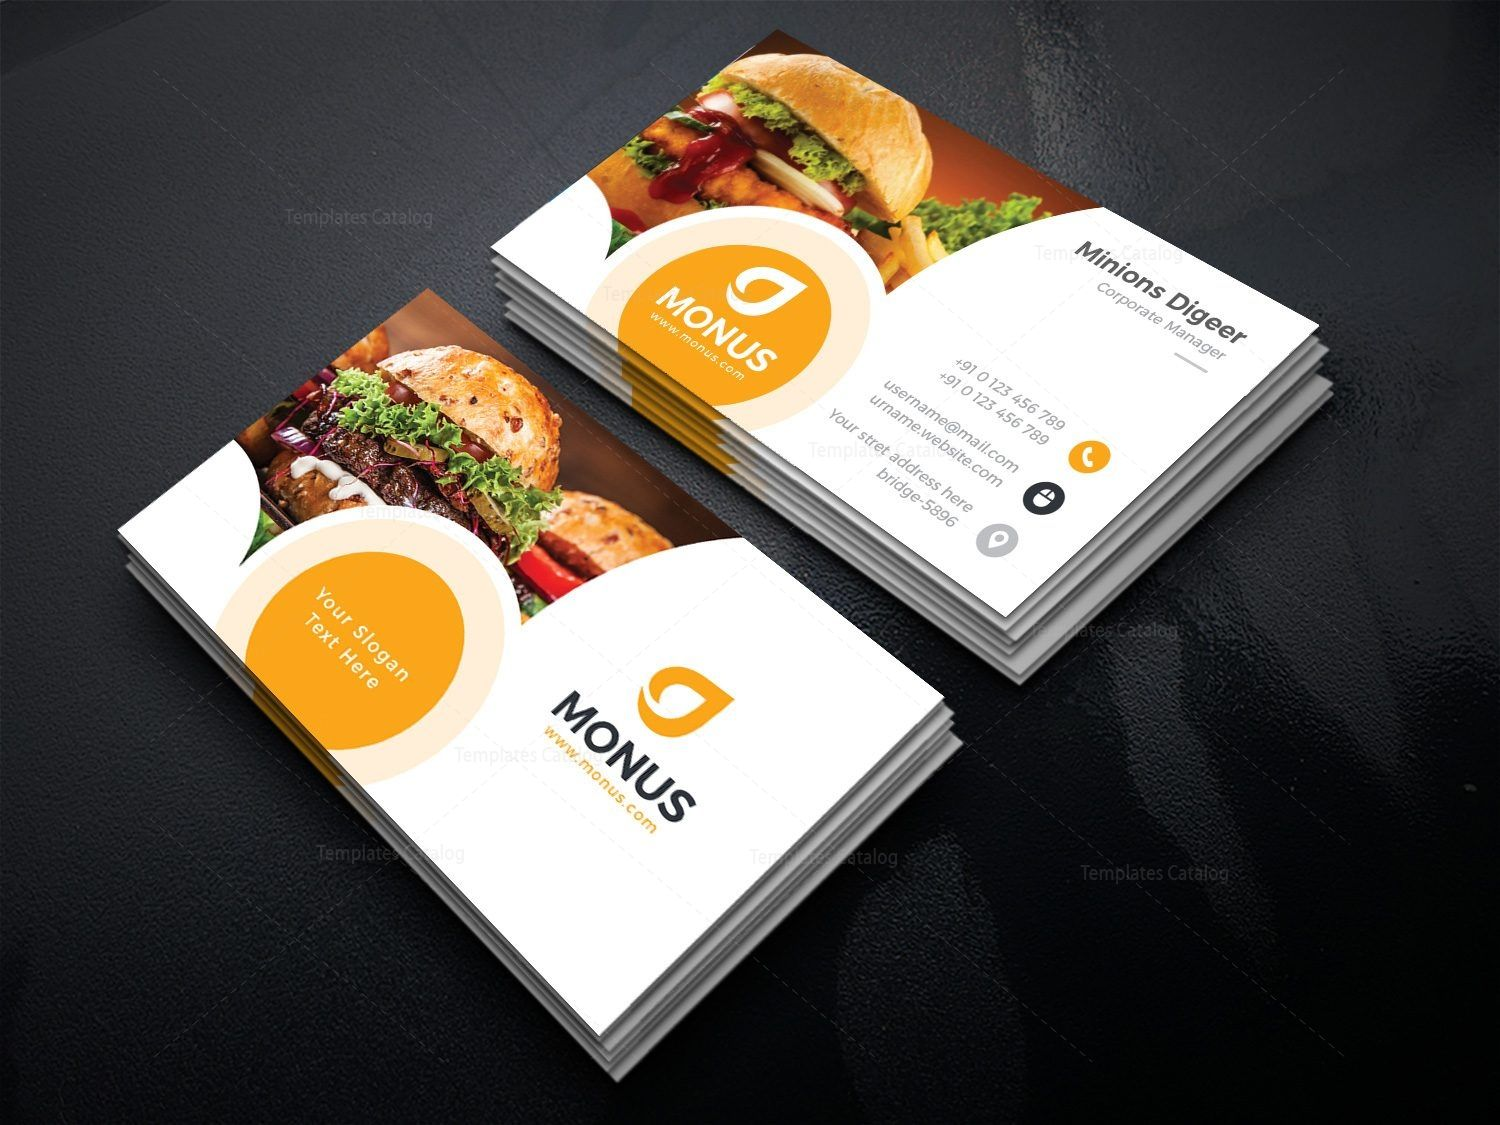 Burger Business Card Design Template 001587 Template Catalog Food Business Card Business Card Template Design Business Card Design